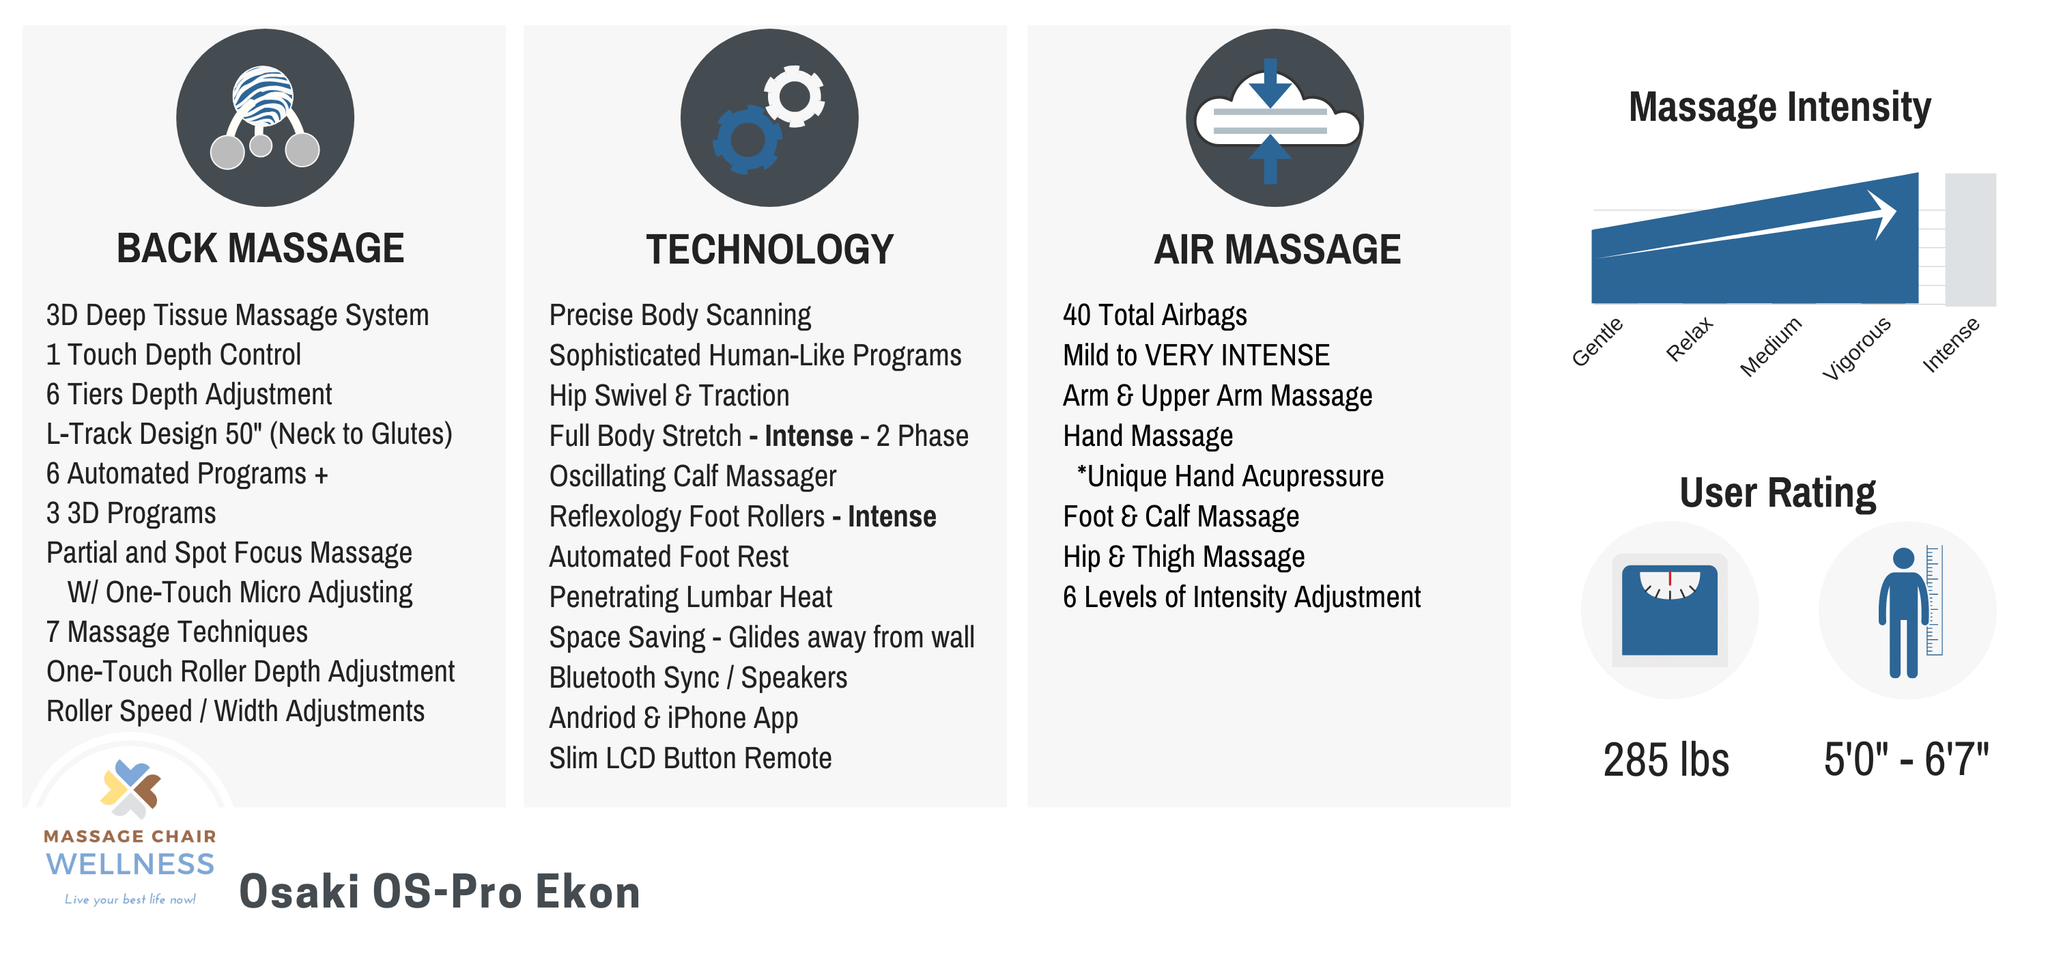 OS-Pro Ekon Massage Chair Summary of Features